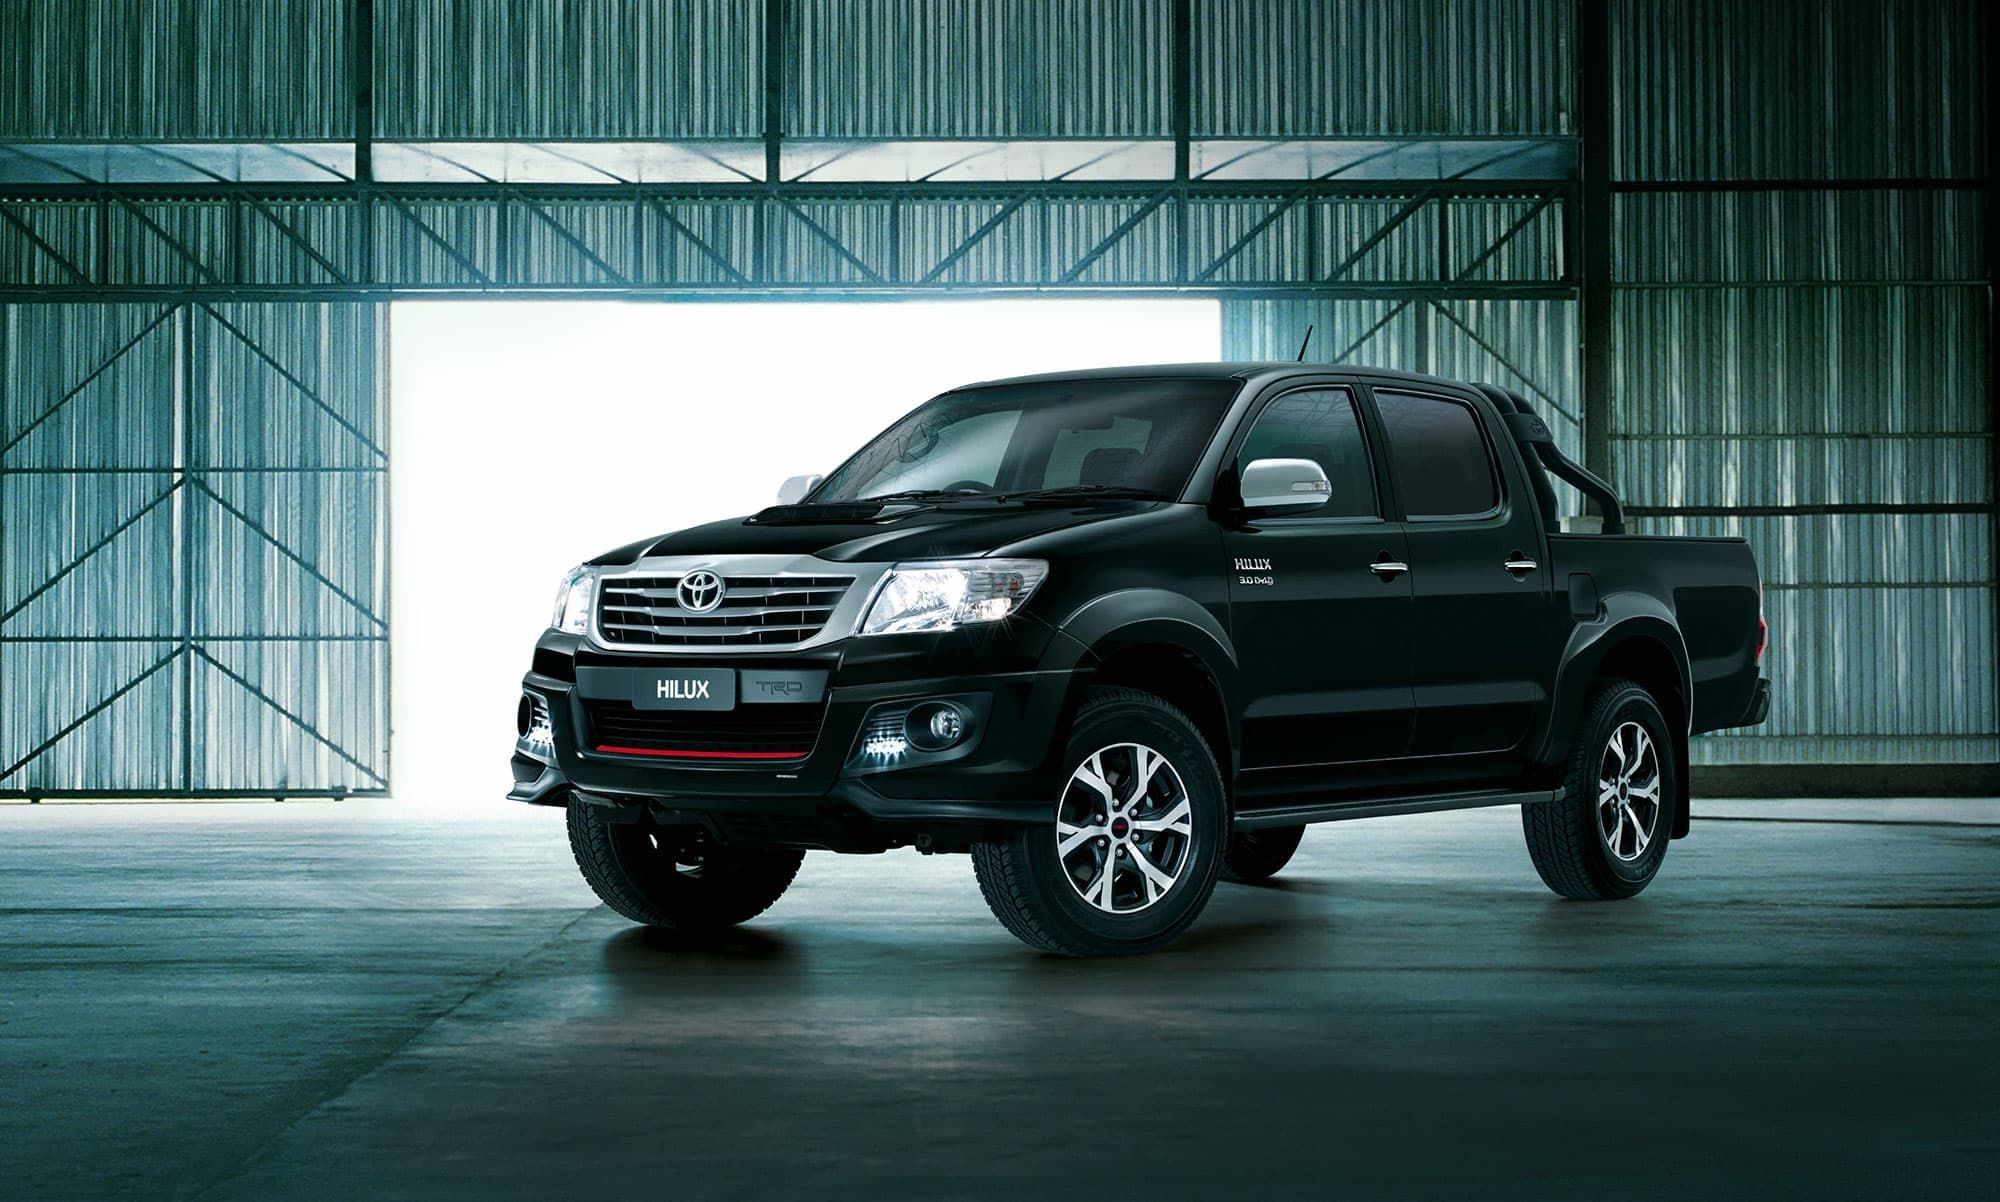 Black Toyota Hilux Hd Wallpapers Toyota Hilux Toyota Toyota Cars